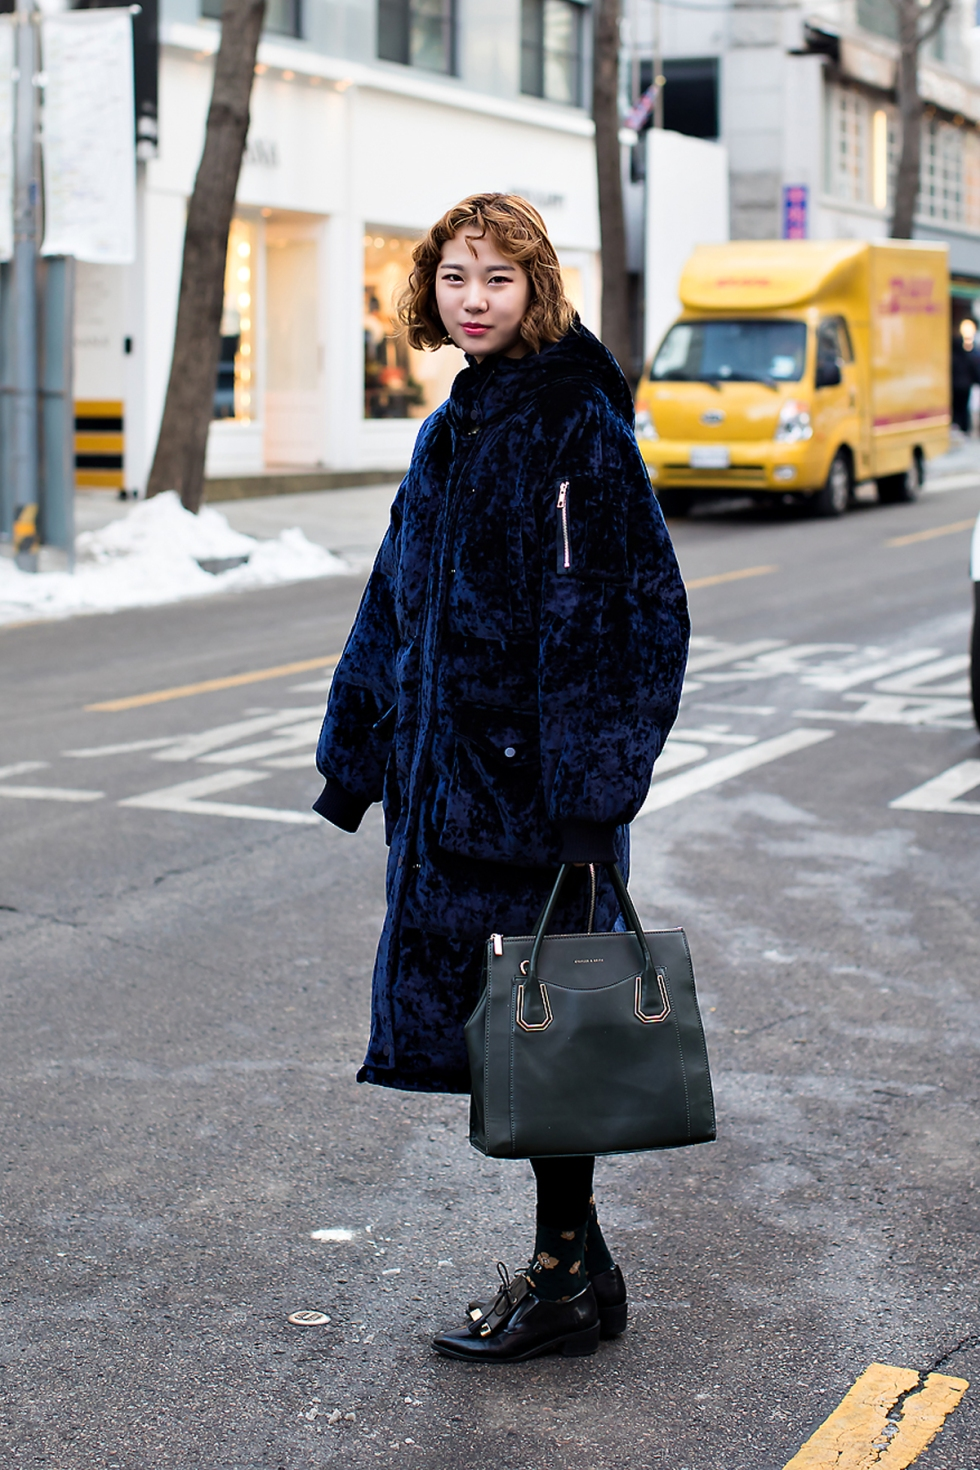 park-juyoung-street-fashion-2017-in-seoul